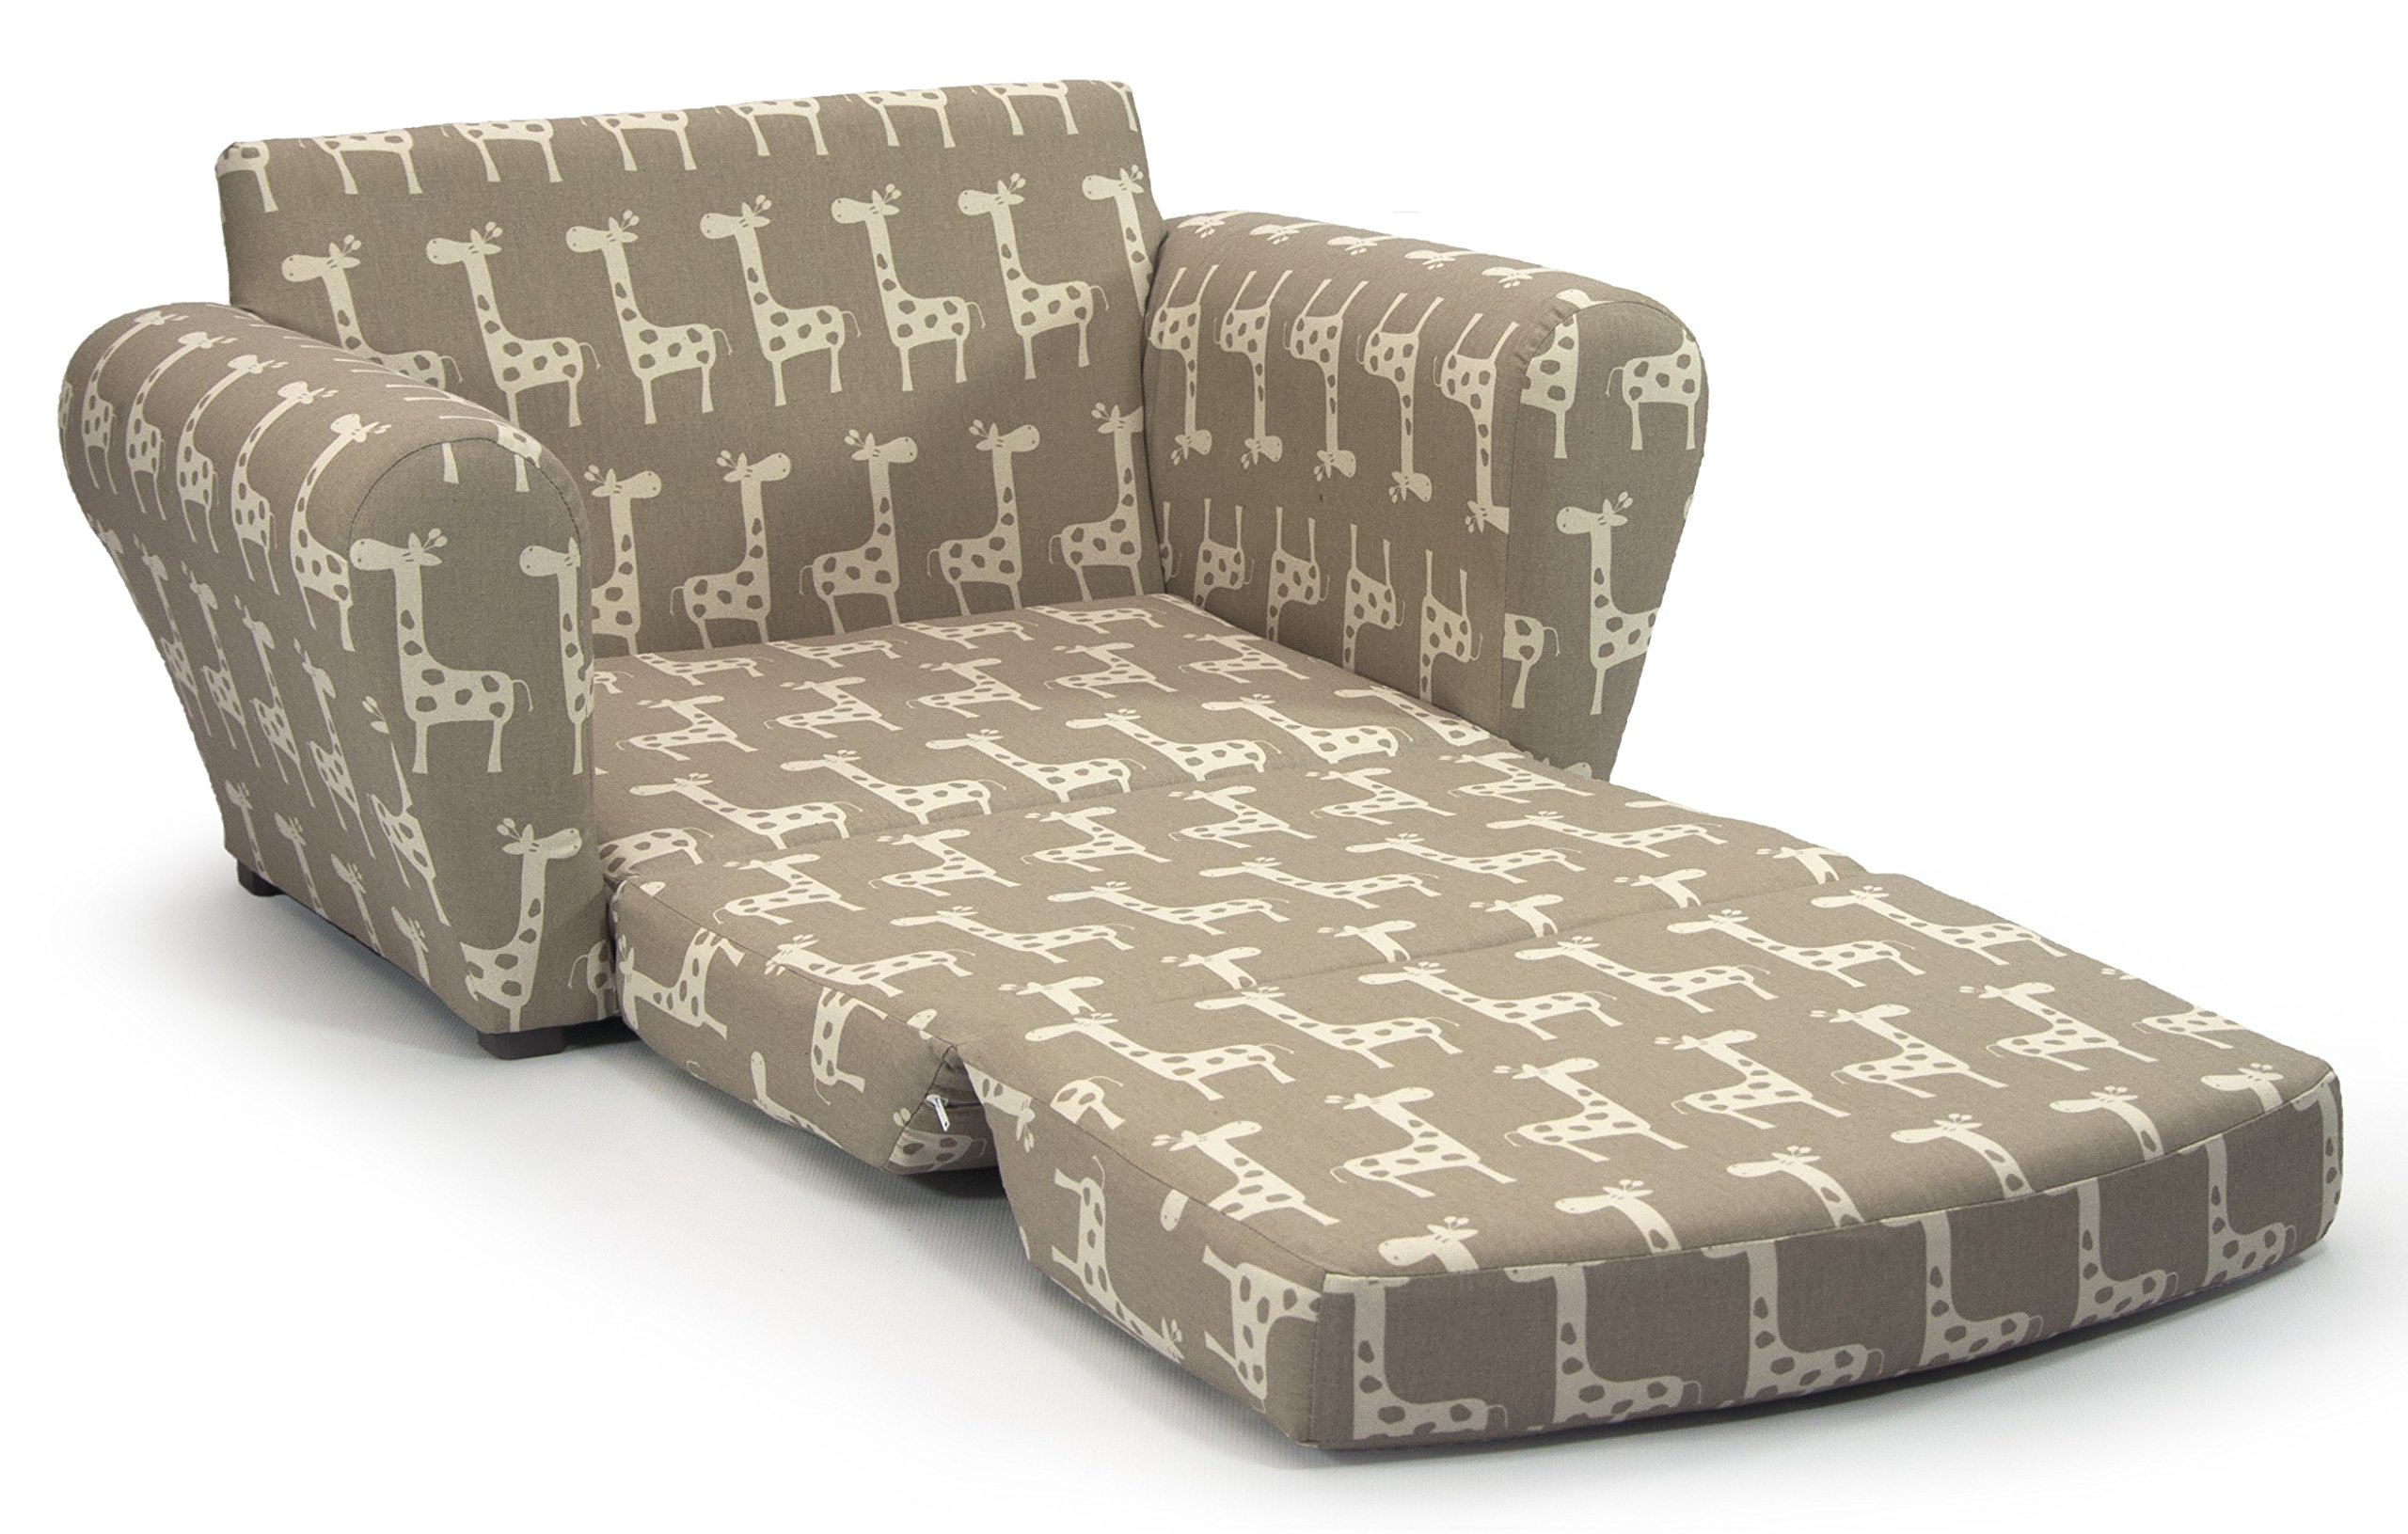 Children's Upholstered Sleepover Sofa Chair -Gender Neutral Kids Fold Out Convertible Armchair for Reading, Gaming and Slumber Parties - Two Fabric Choices for Space Saving Decorating by Fun Future (Image #2)